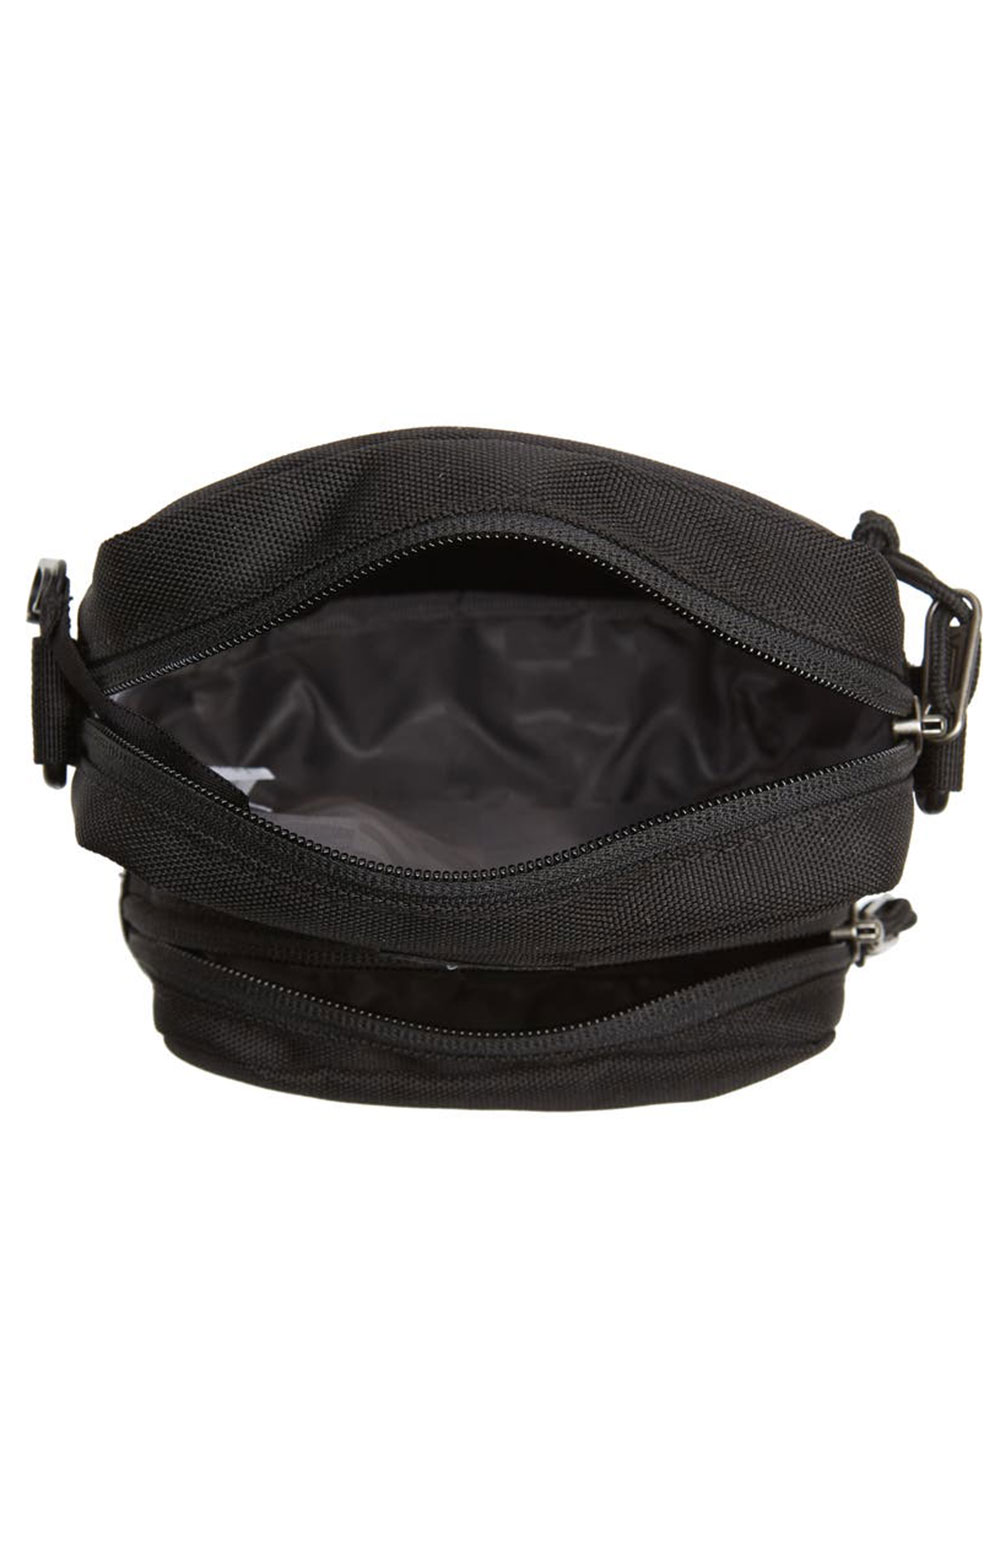 Construct Shoulder Bag- Black 4